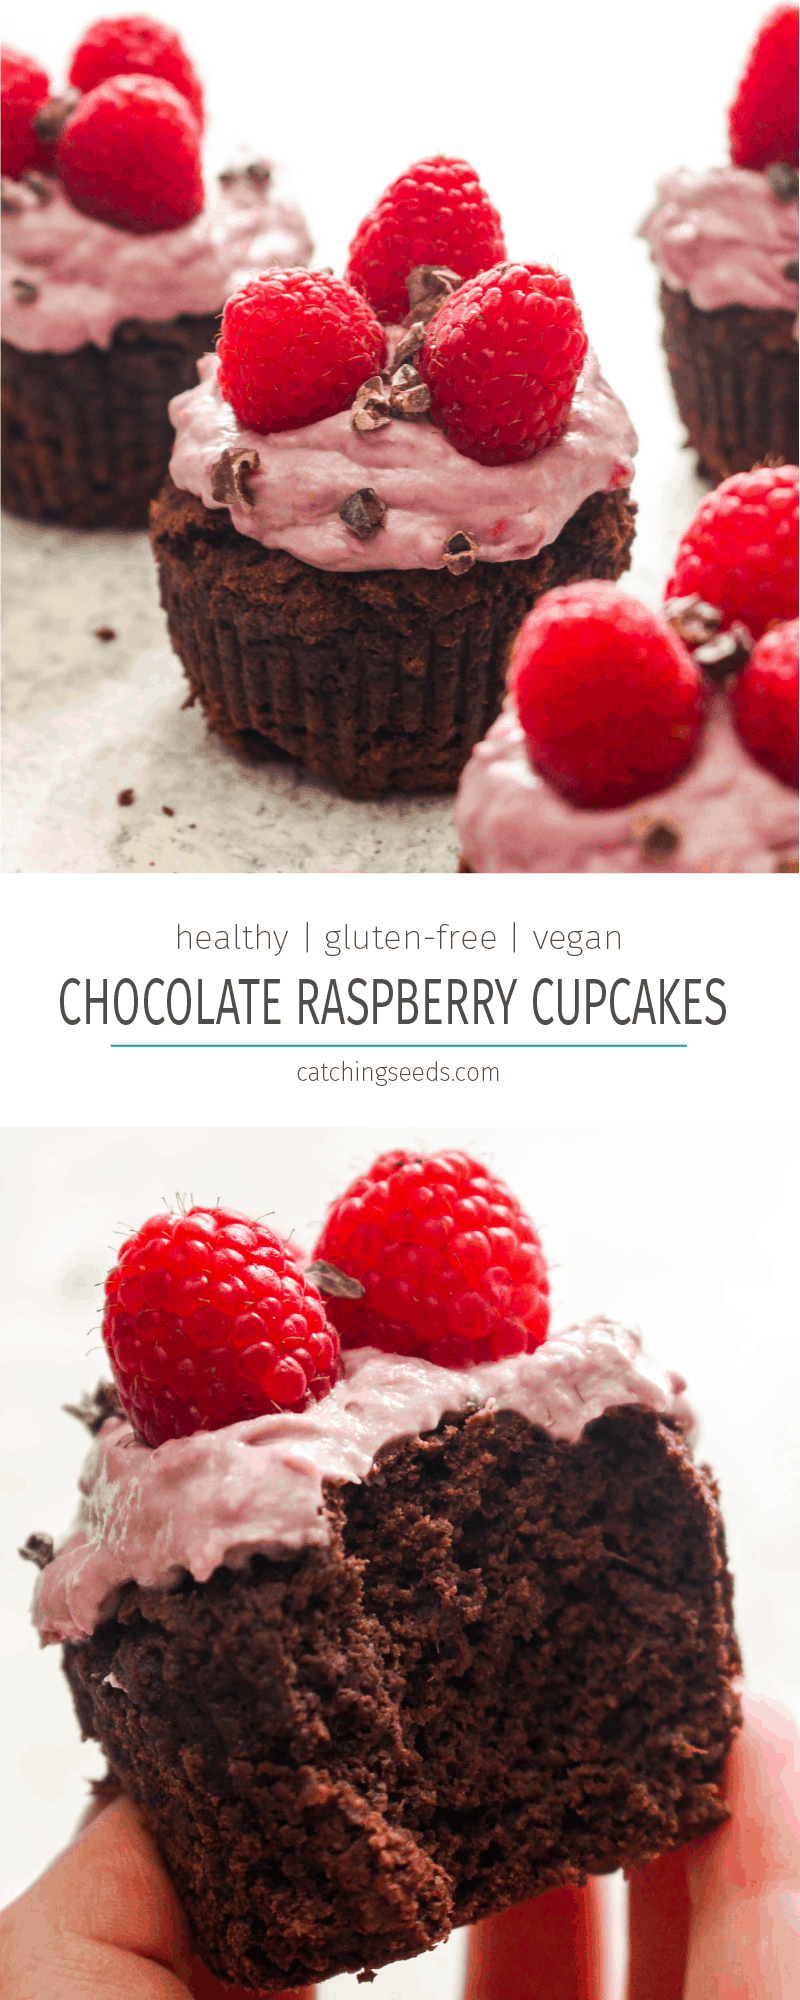 These Healthy Chocolate Raspberry Cupcakes are a valentine's day dream come true!  Rich gluten-free vegan chocolate cupcakes are smothered in a frosting made from fresh raspberries. The perfect fruity and chocolaty dessert! | CatchingSeeds.com